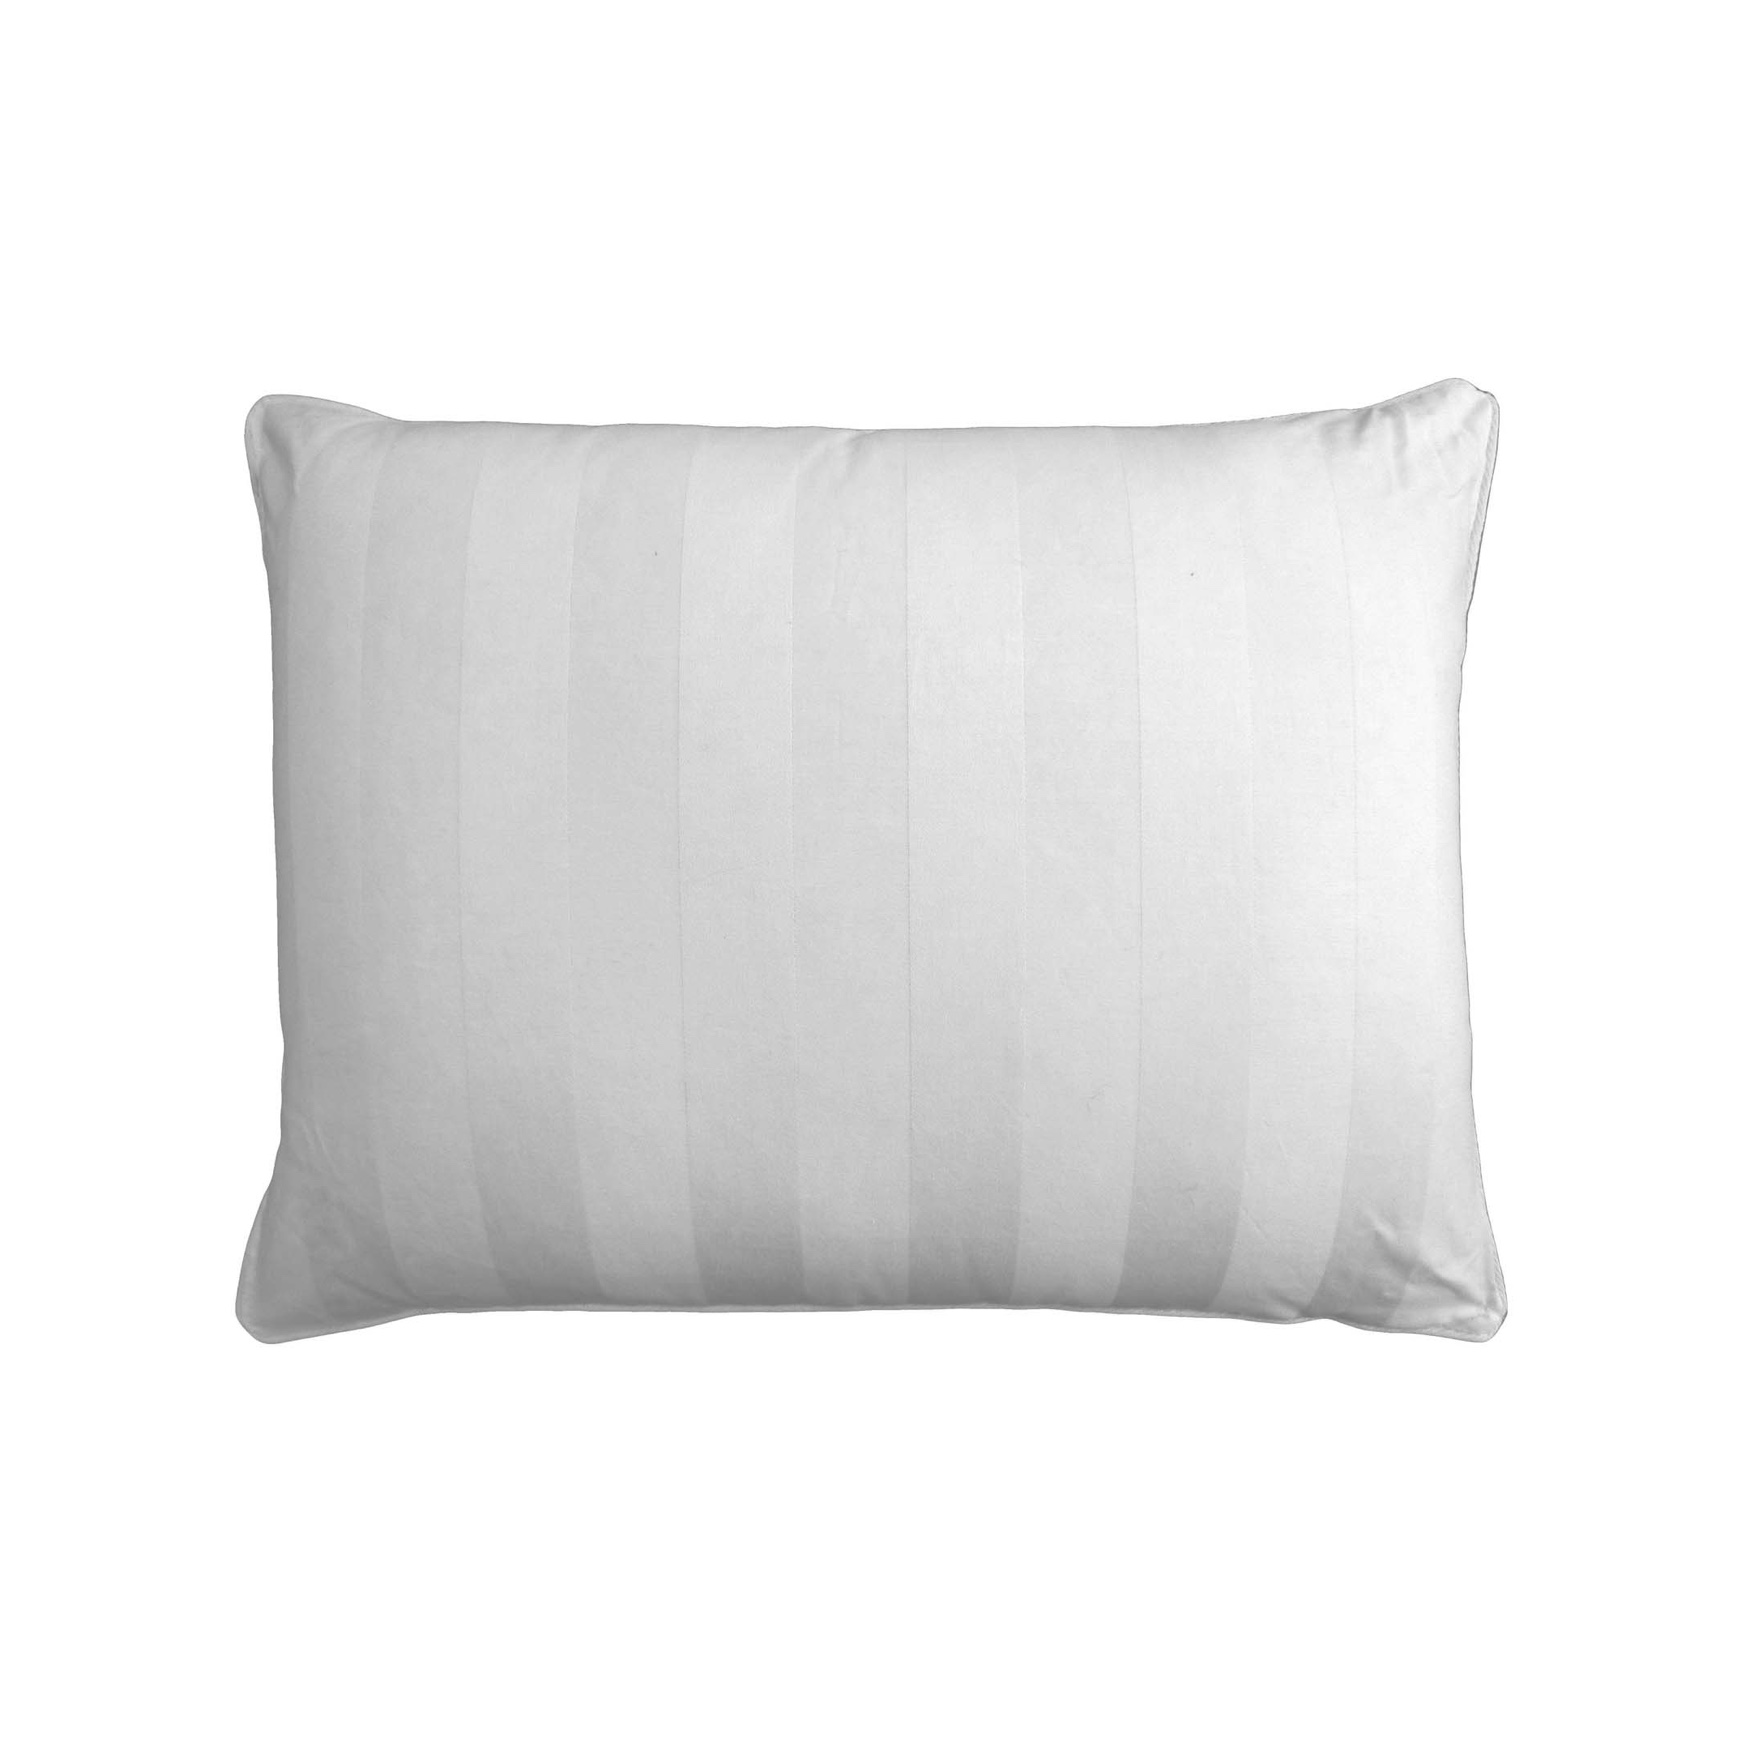 Travel Fresh Down Filled Travel Pillow, WHITE